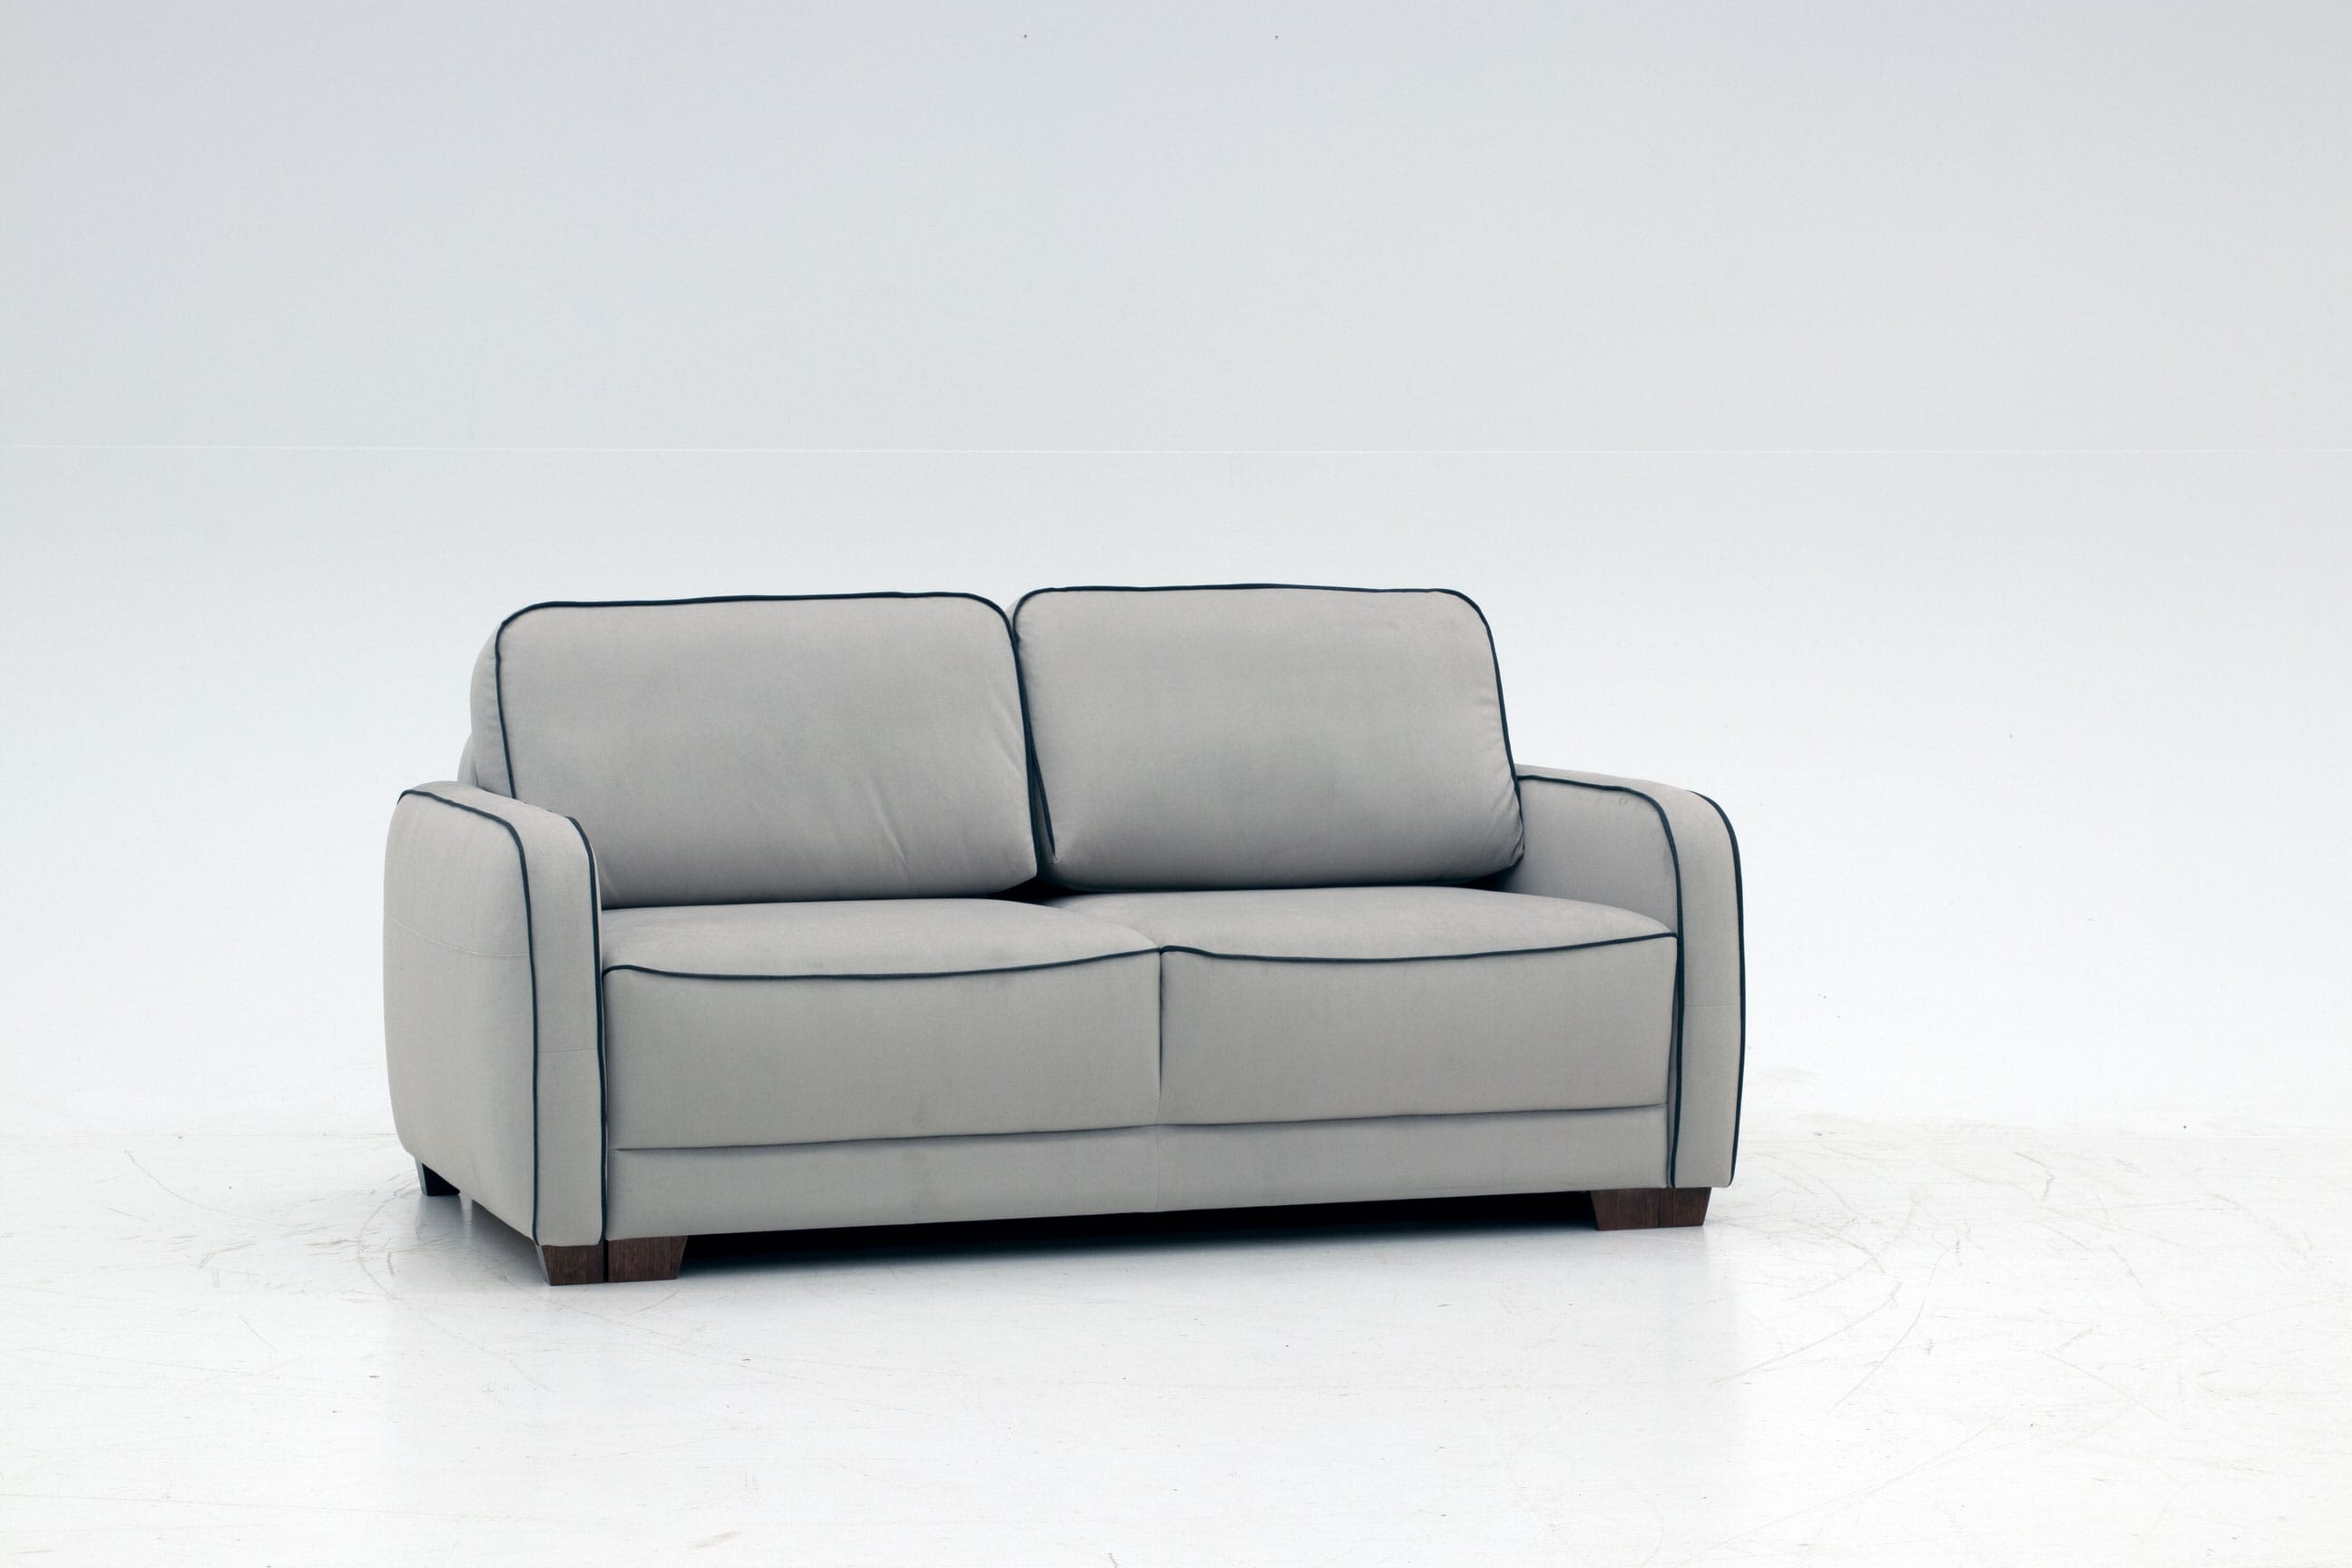 Leon Sofa Sleeper Queen Size By Luonto Furniture